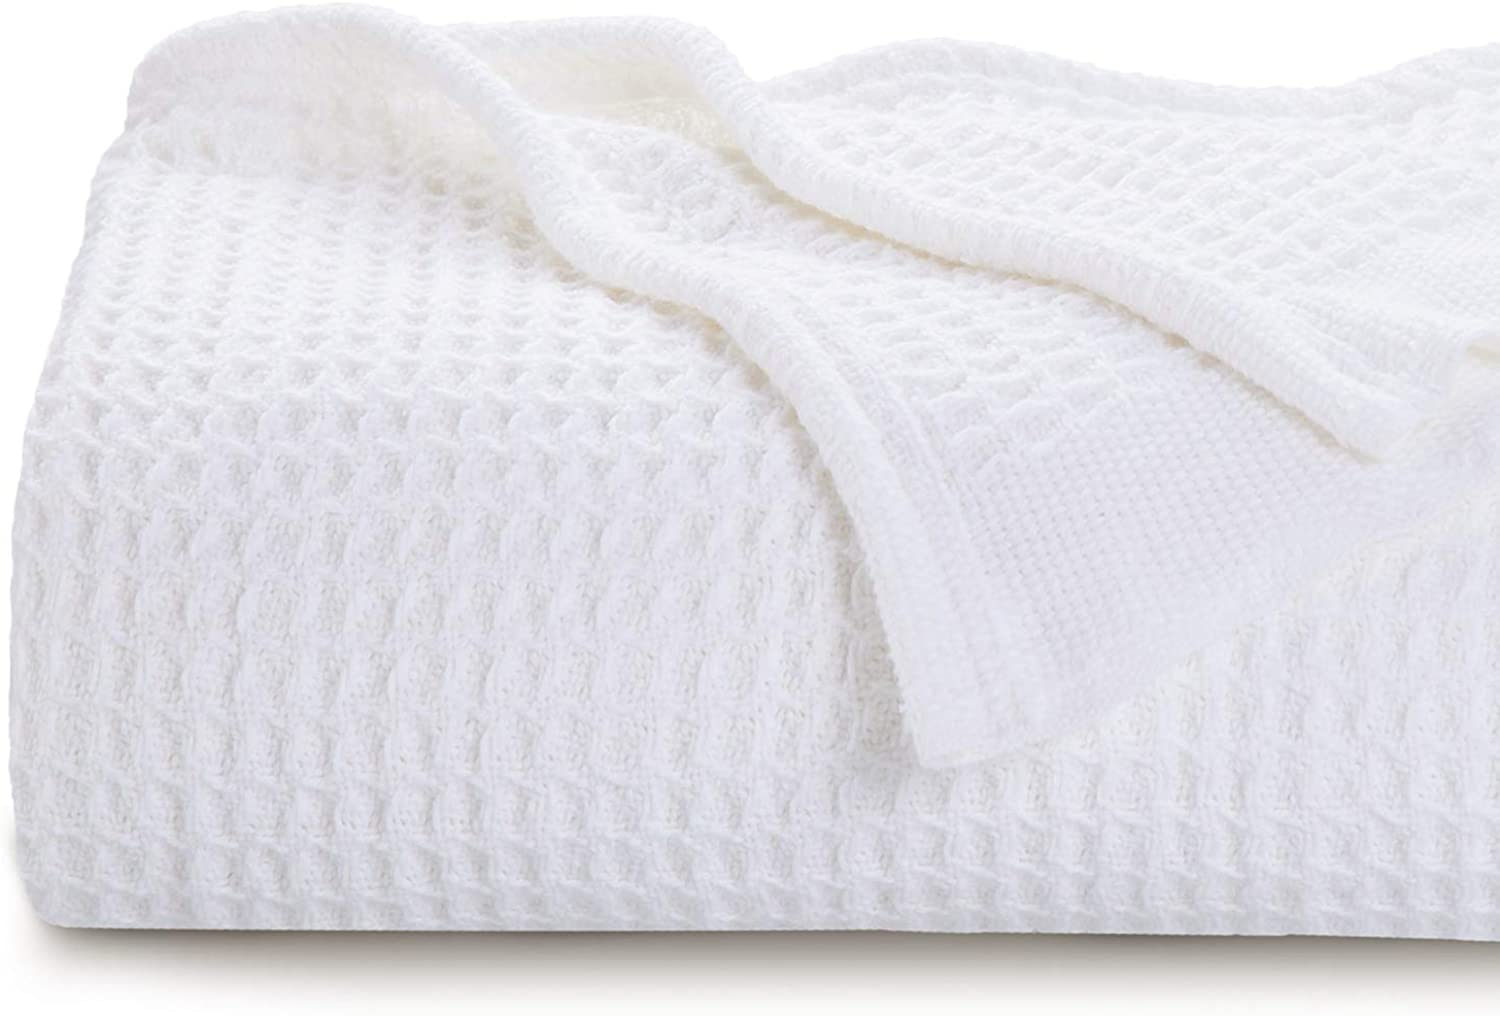 Bedsure 100% Cotton Thermal Blanket - 405GSM Soft Blanket in Waffle Weave for Home Decoration - Perfect for Layering Any Bed for All-Season - King Size (104  x 90 ), White